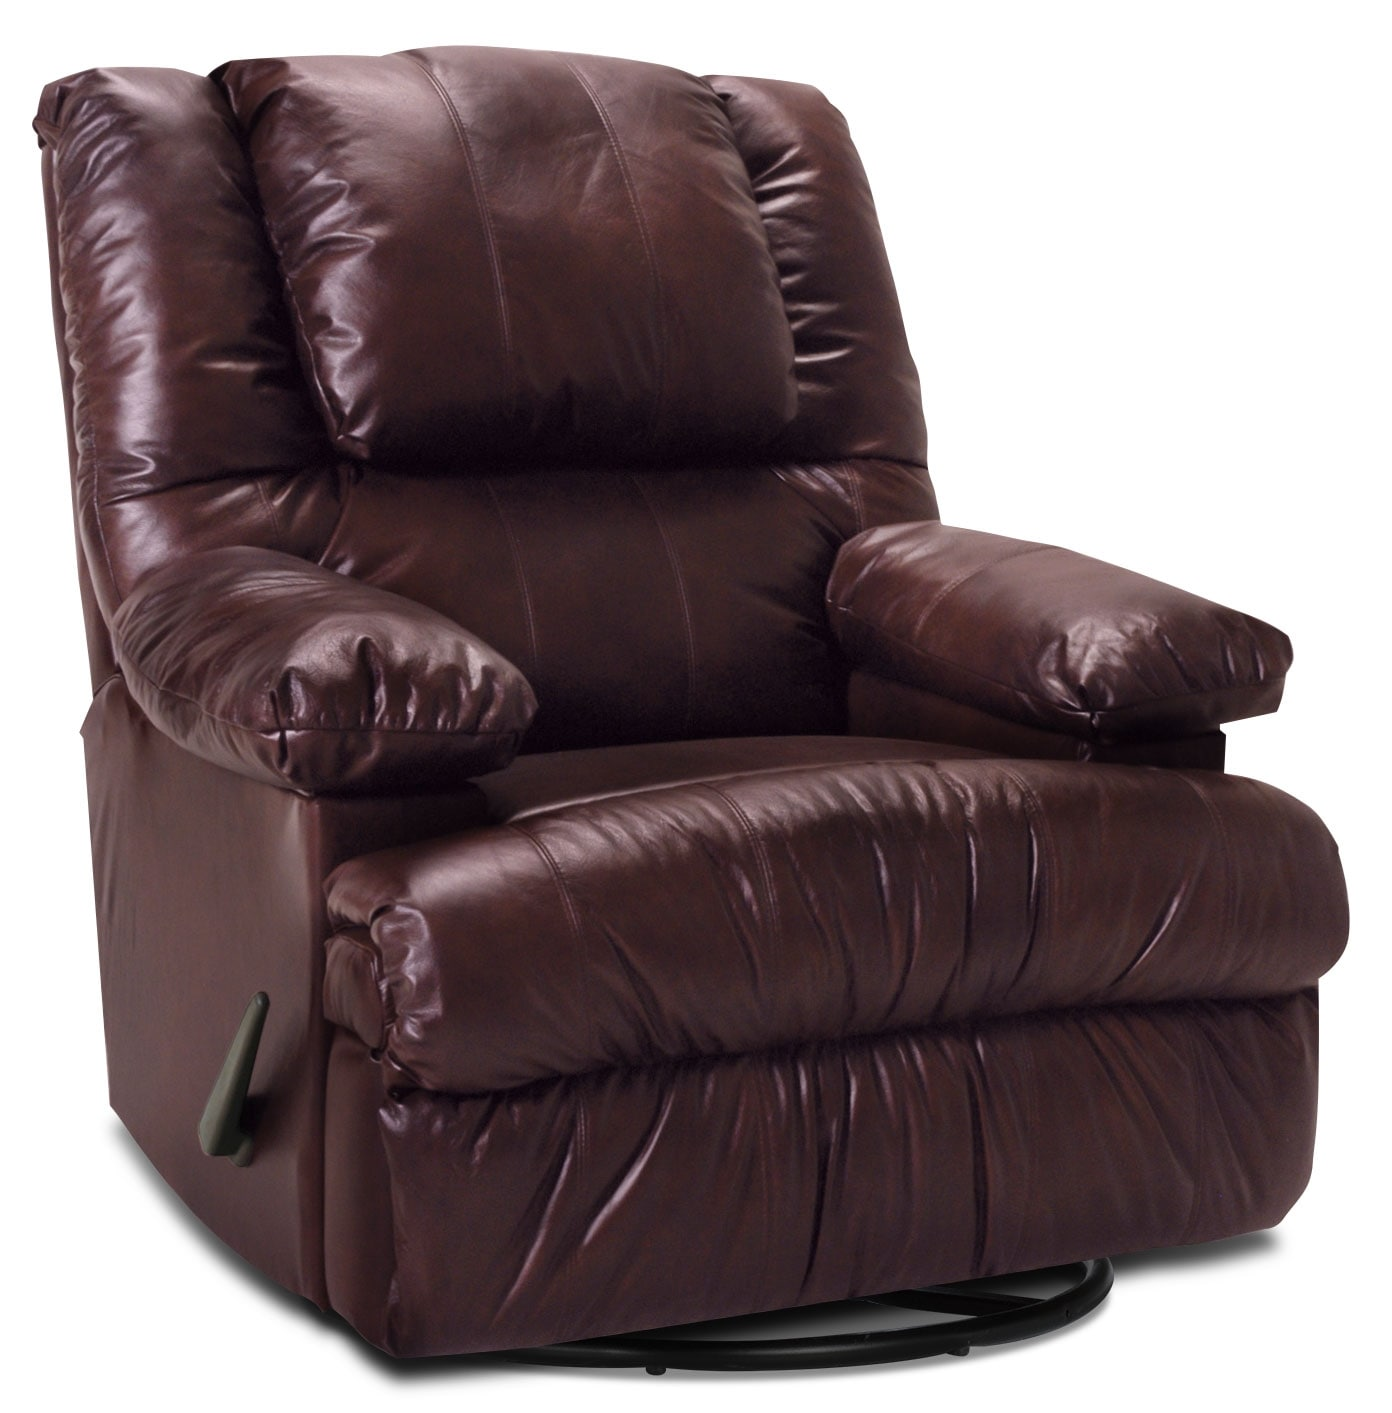 Designed2B Recliner 5598 Genuine Leather Swivel Rocker with Storage Arms - Burgundy